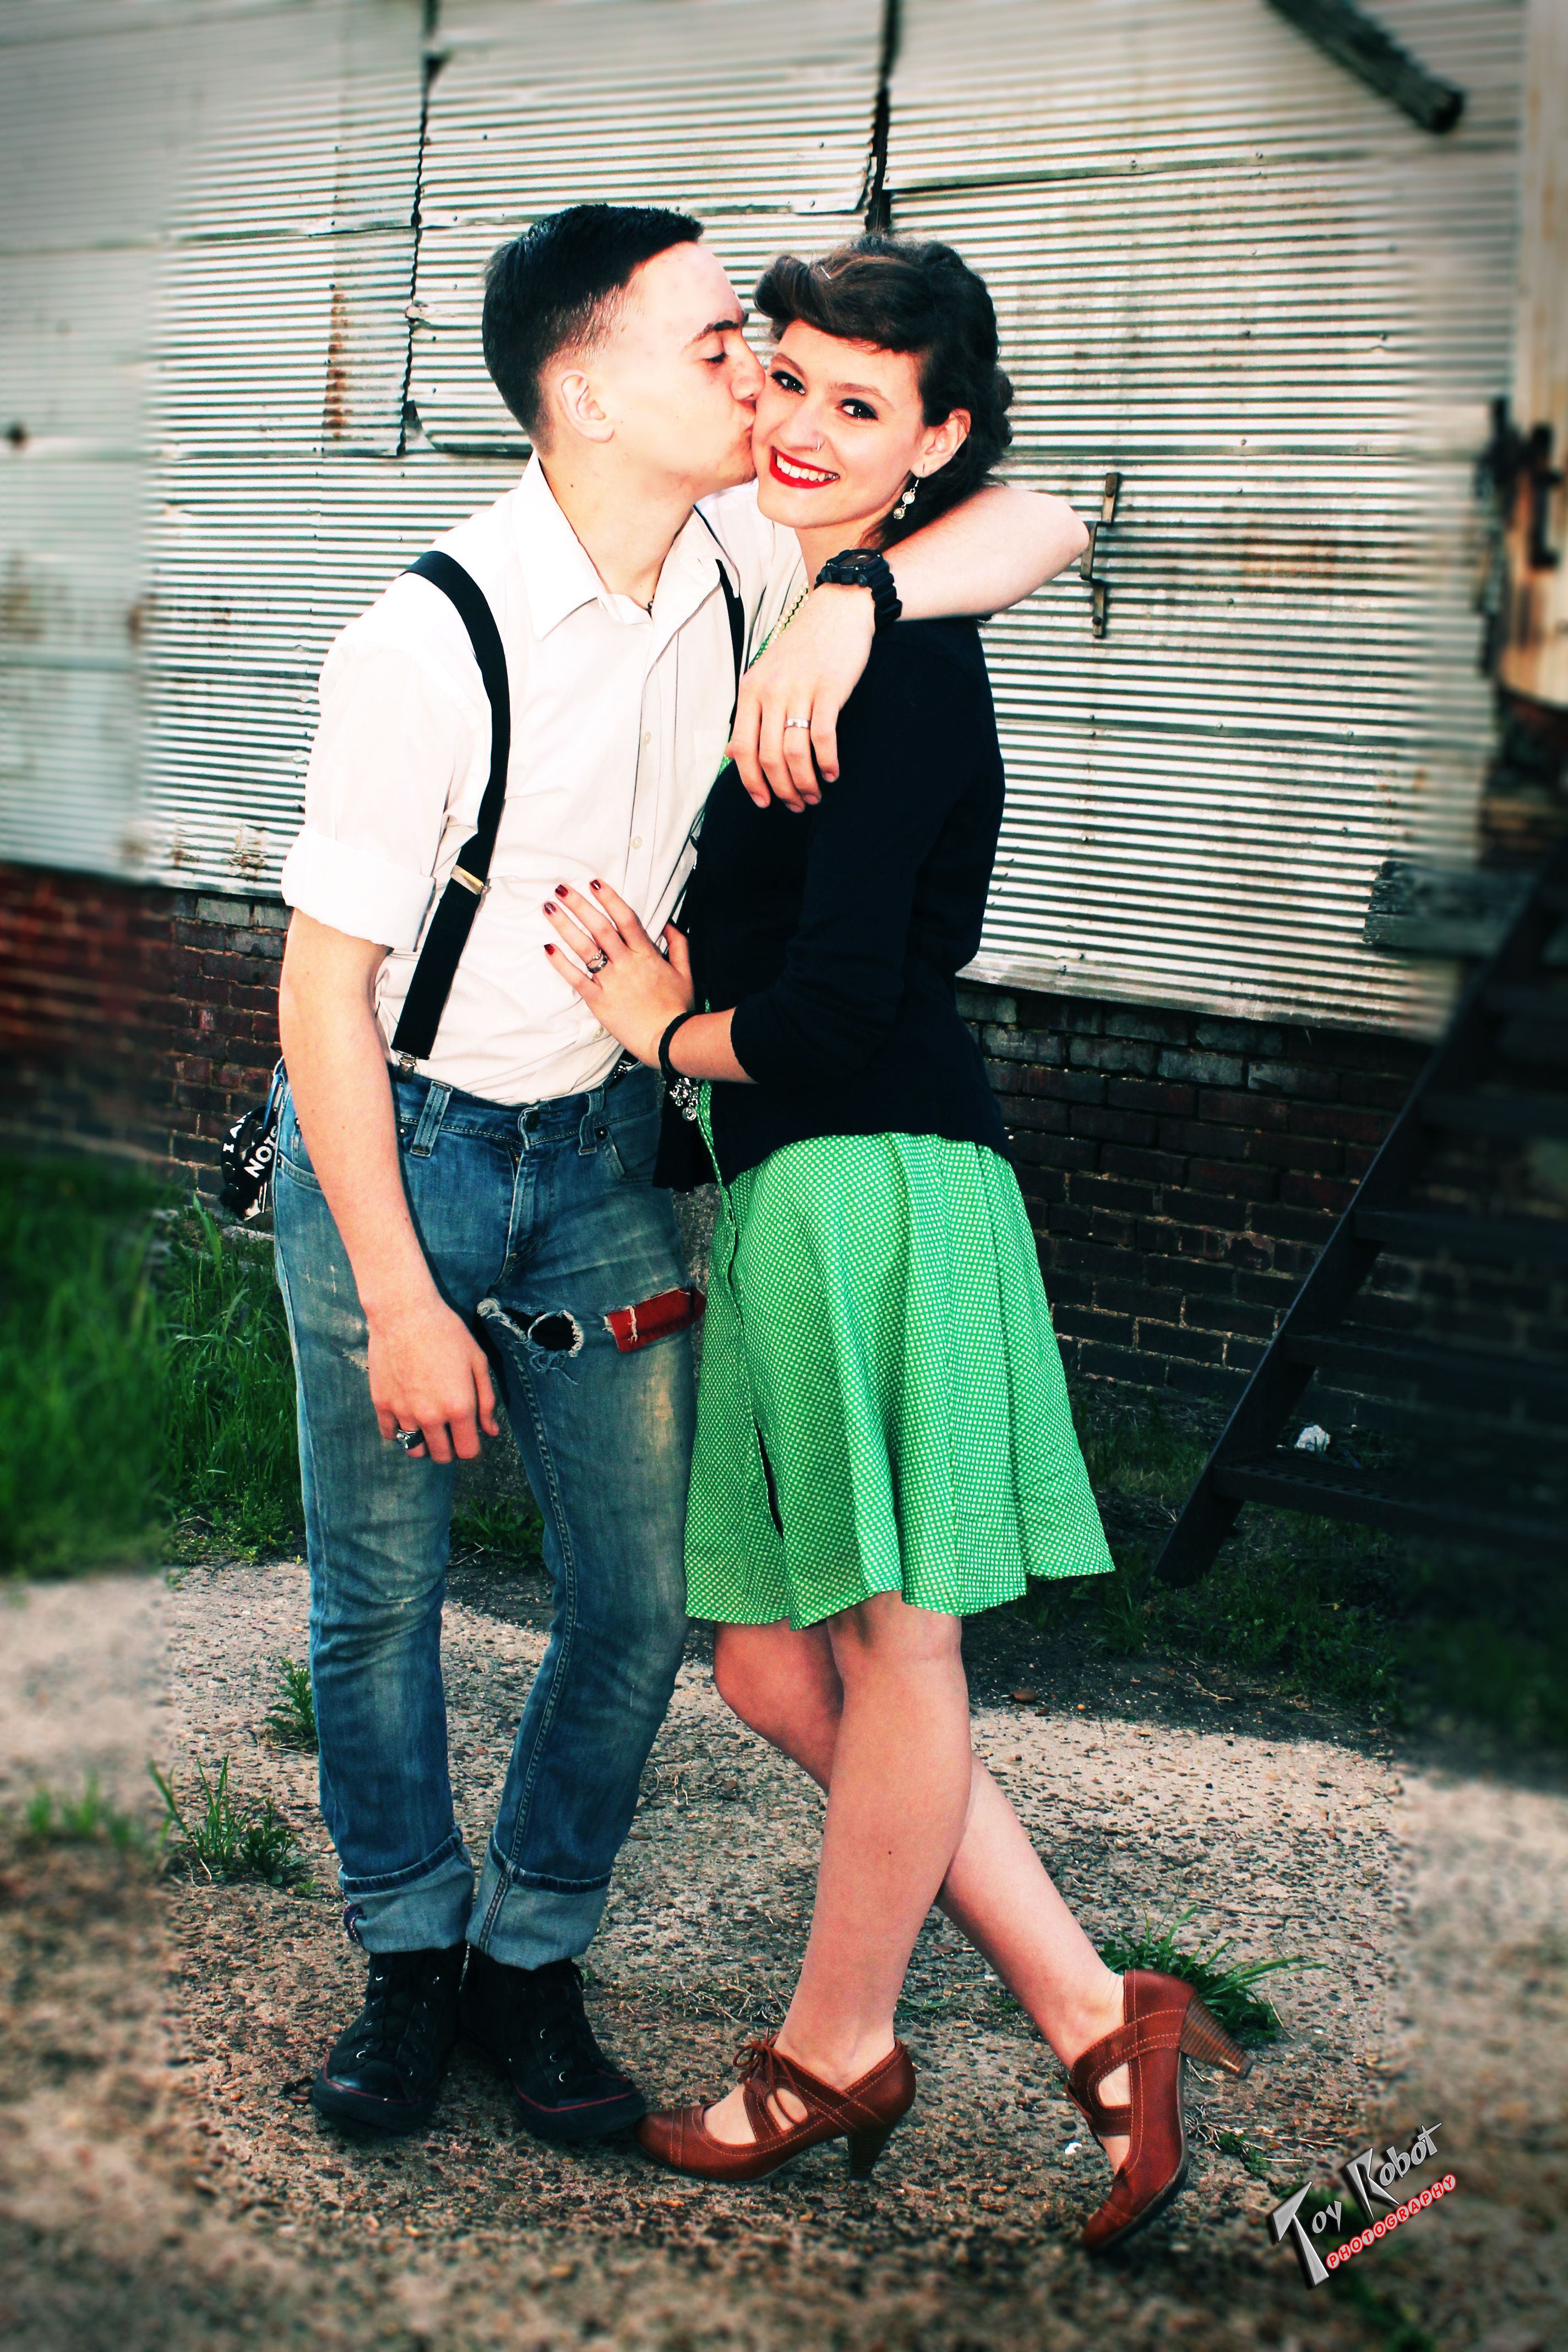 Rockabilly / Rockabella couple photo shoot. Greaser guy ...